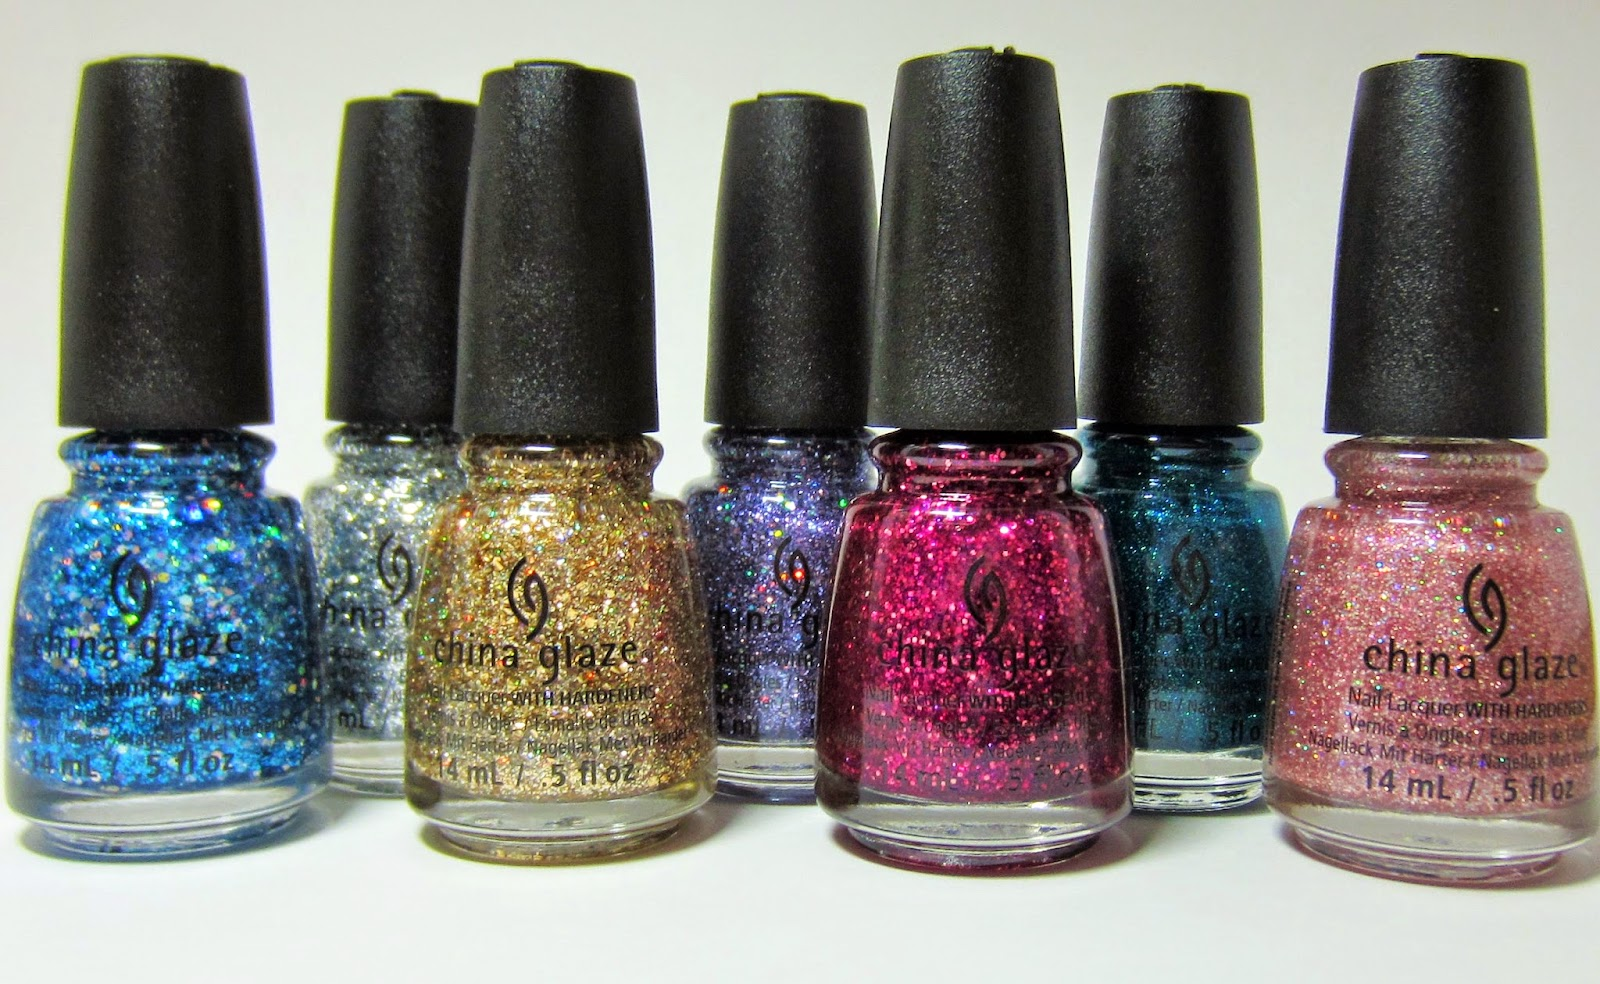 b3151eae5f4 Polished with Pizzazz   NEW  China Glaze Glitter Polishes